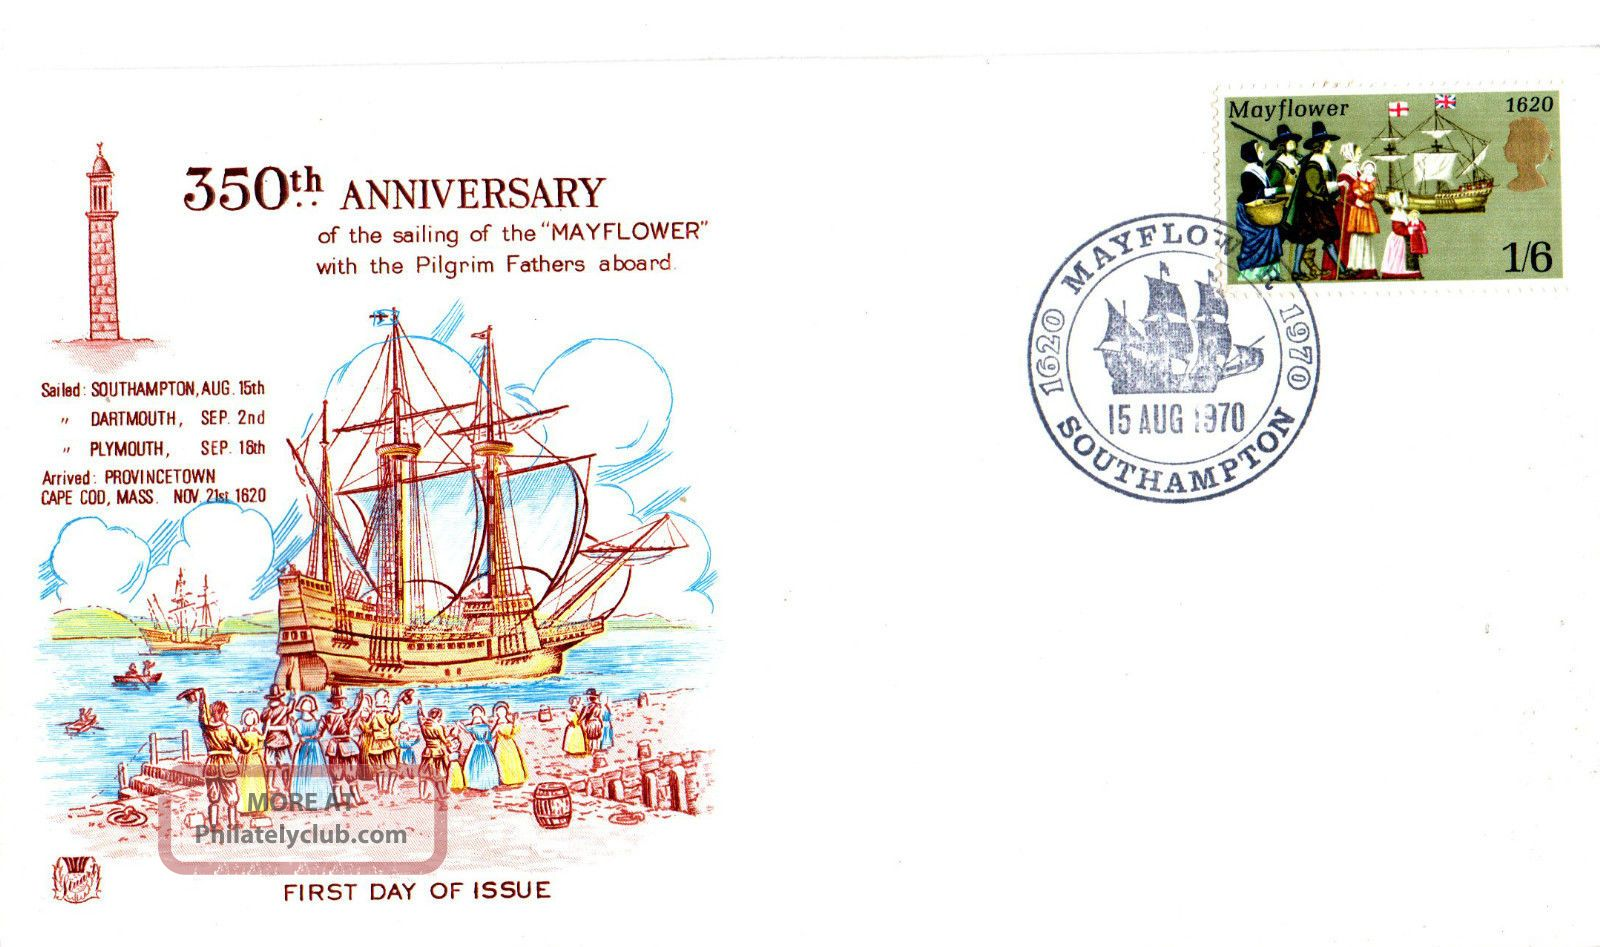 15 August 1970 Mayflower Stuart Commemorative Cover Southampton Shs Transportation photo